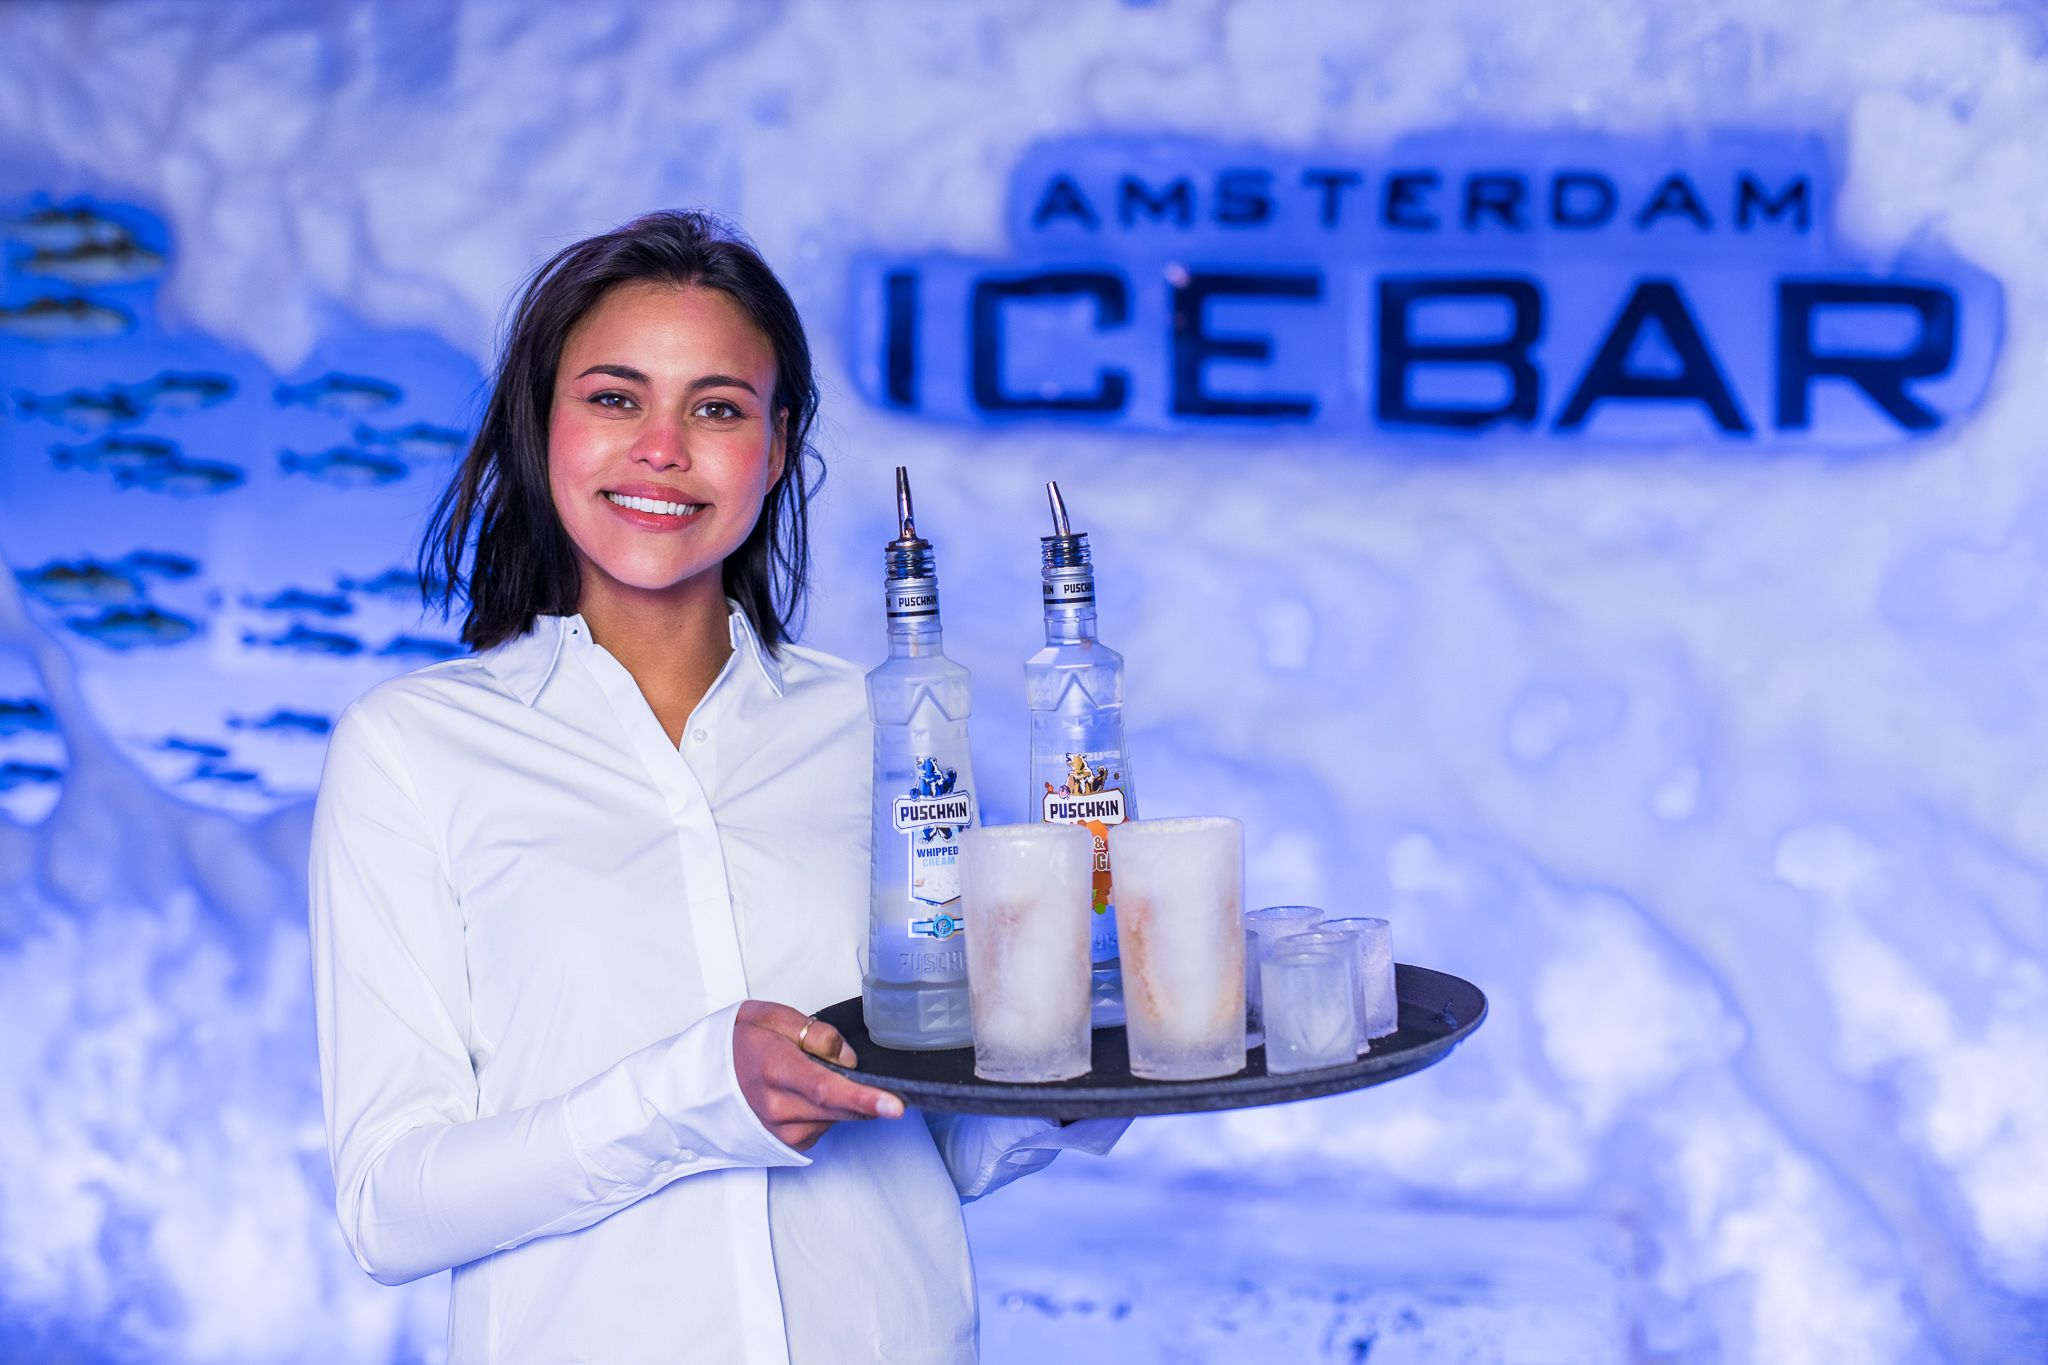 Amsterdam XtraCold Icebar Tickets with Drinks